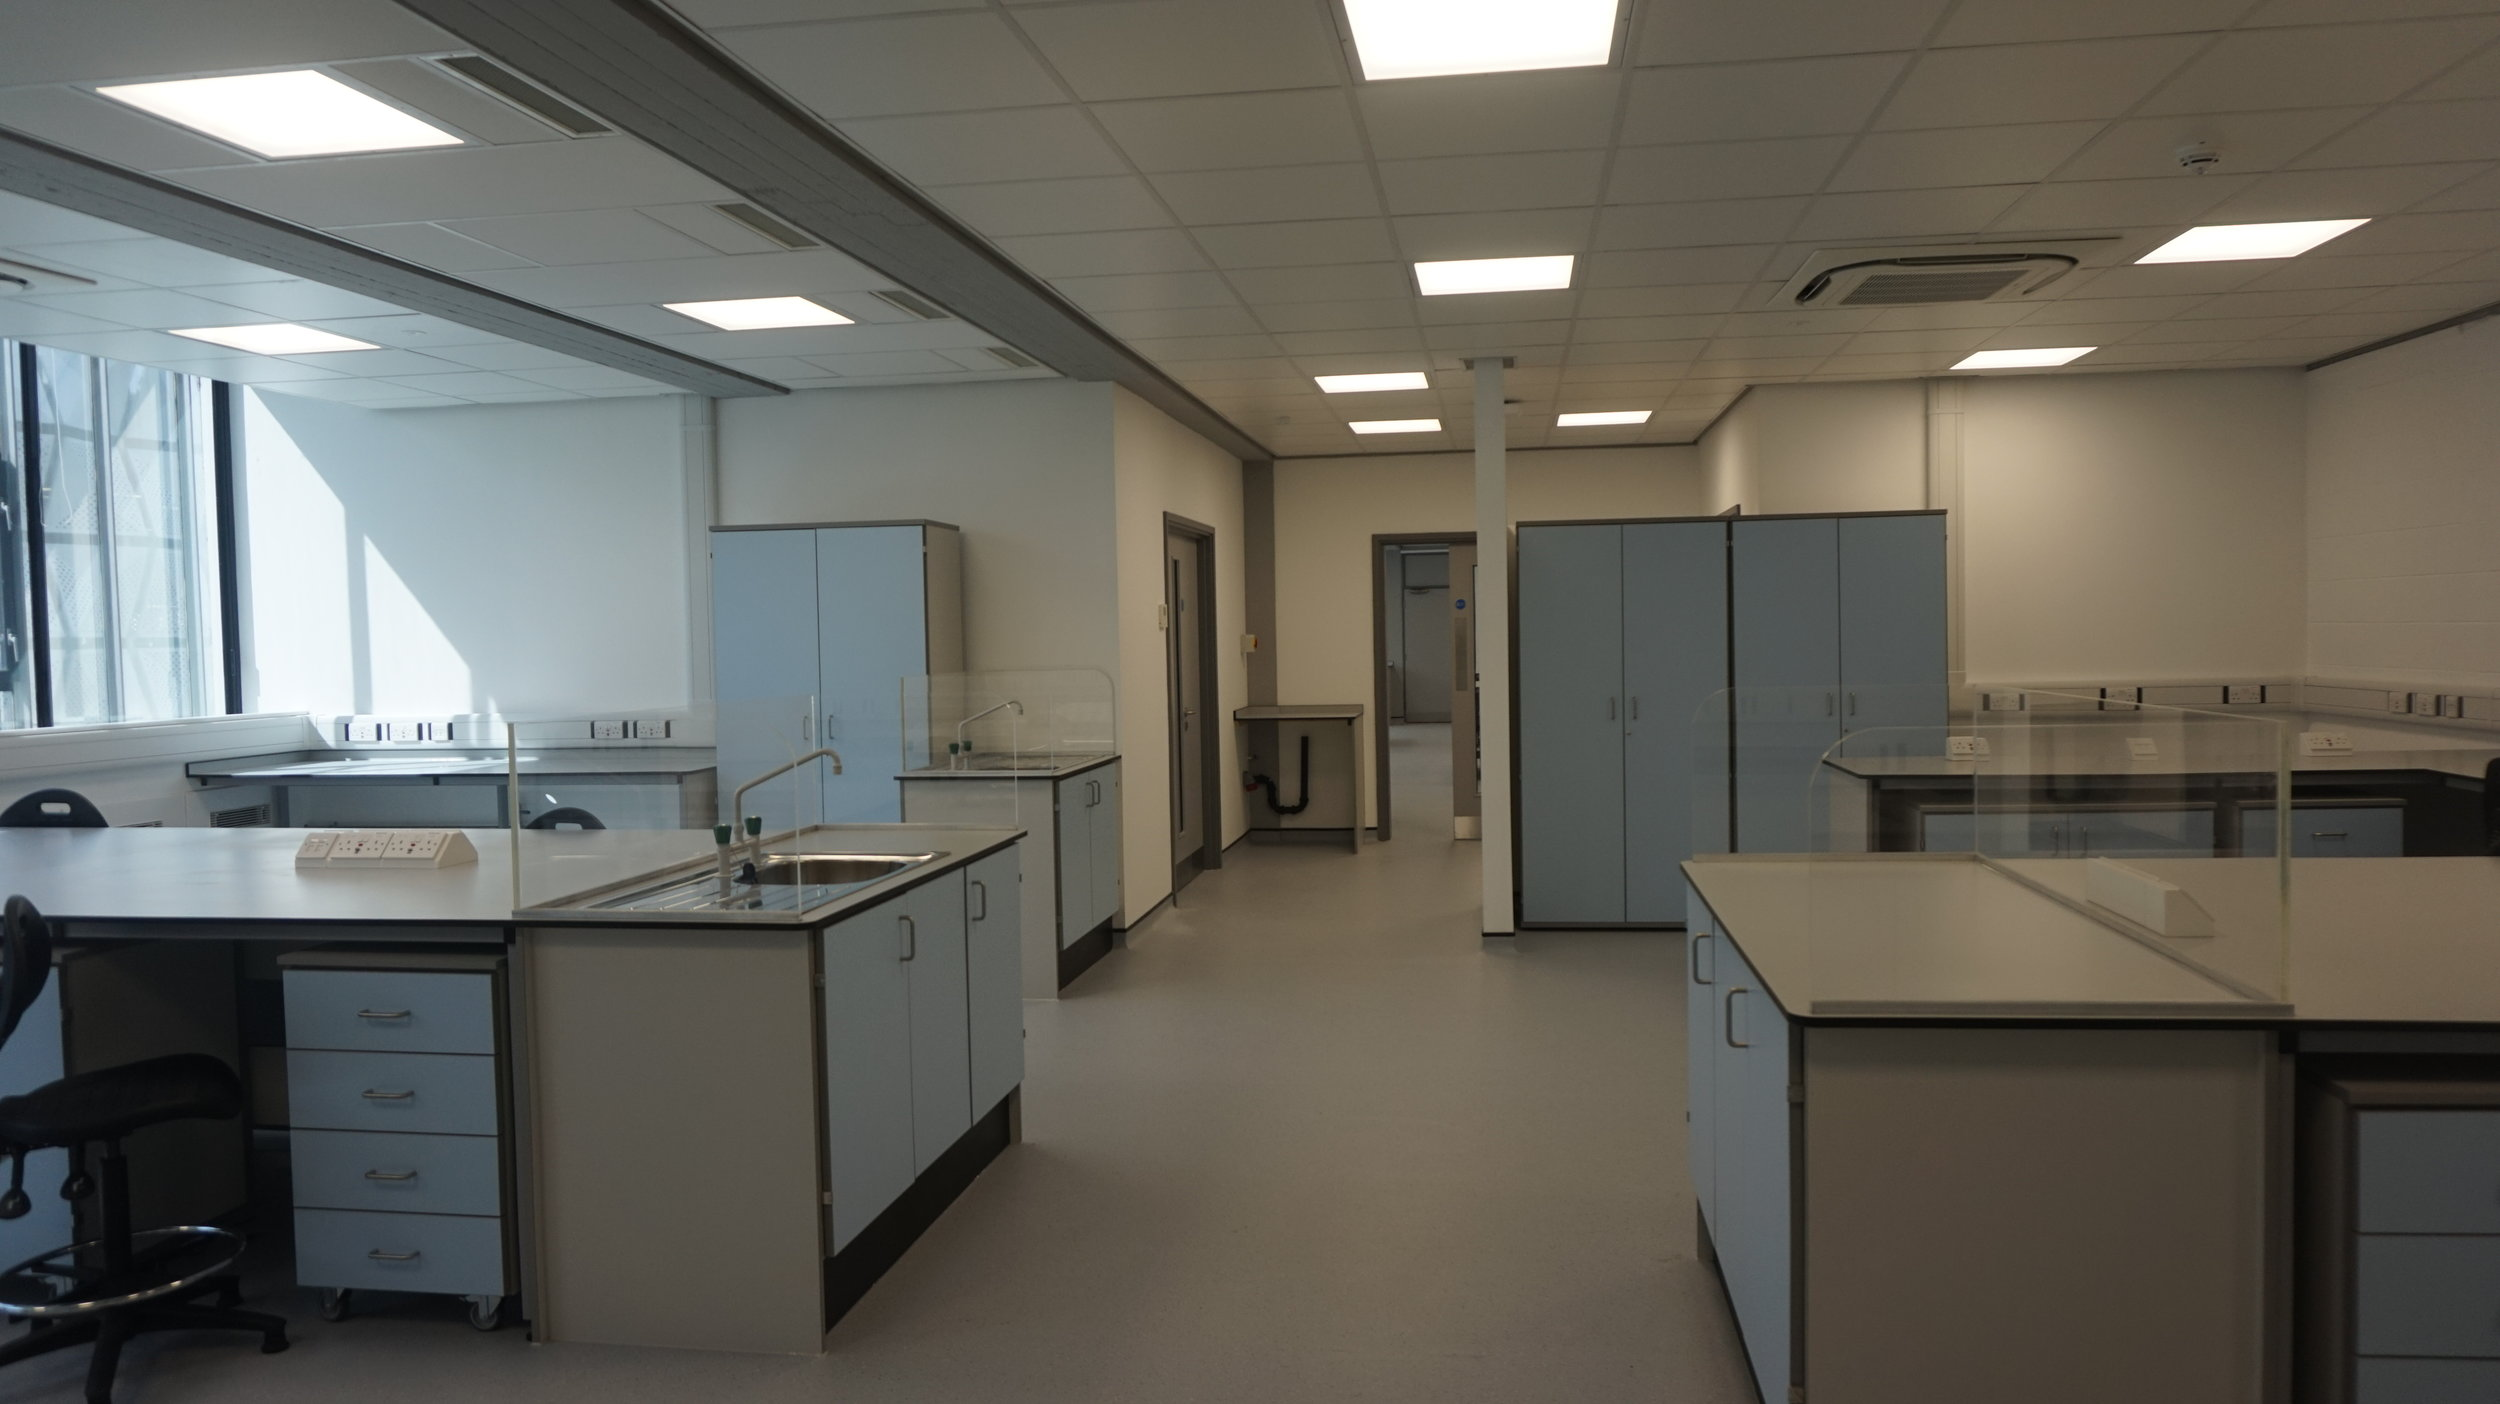 Laboratory 2 and the Bio Hazard Work space